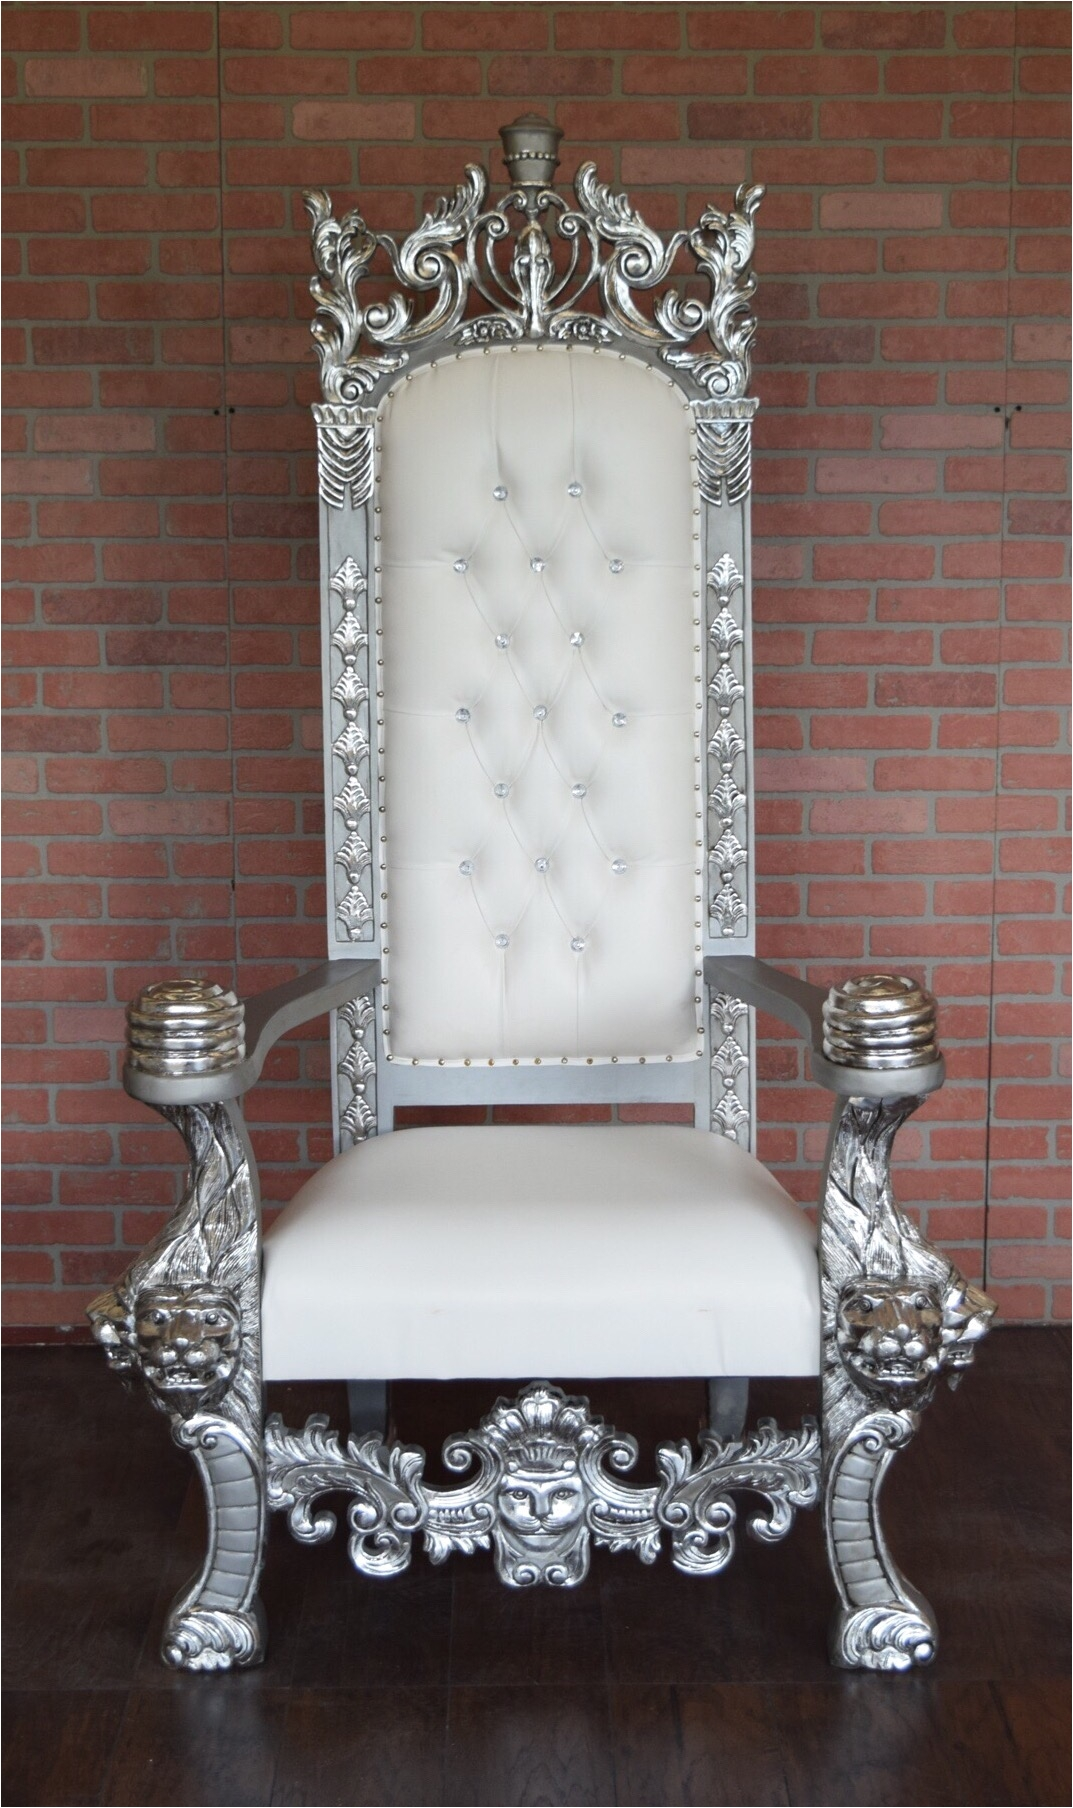 throne chairs for rent silver organza chair sashes baby shower rental nj adorable pictures of king and queen best